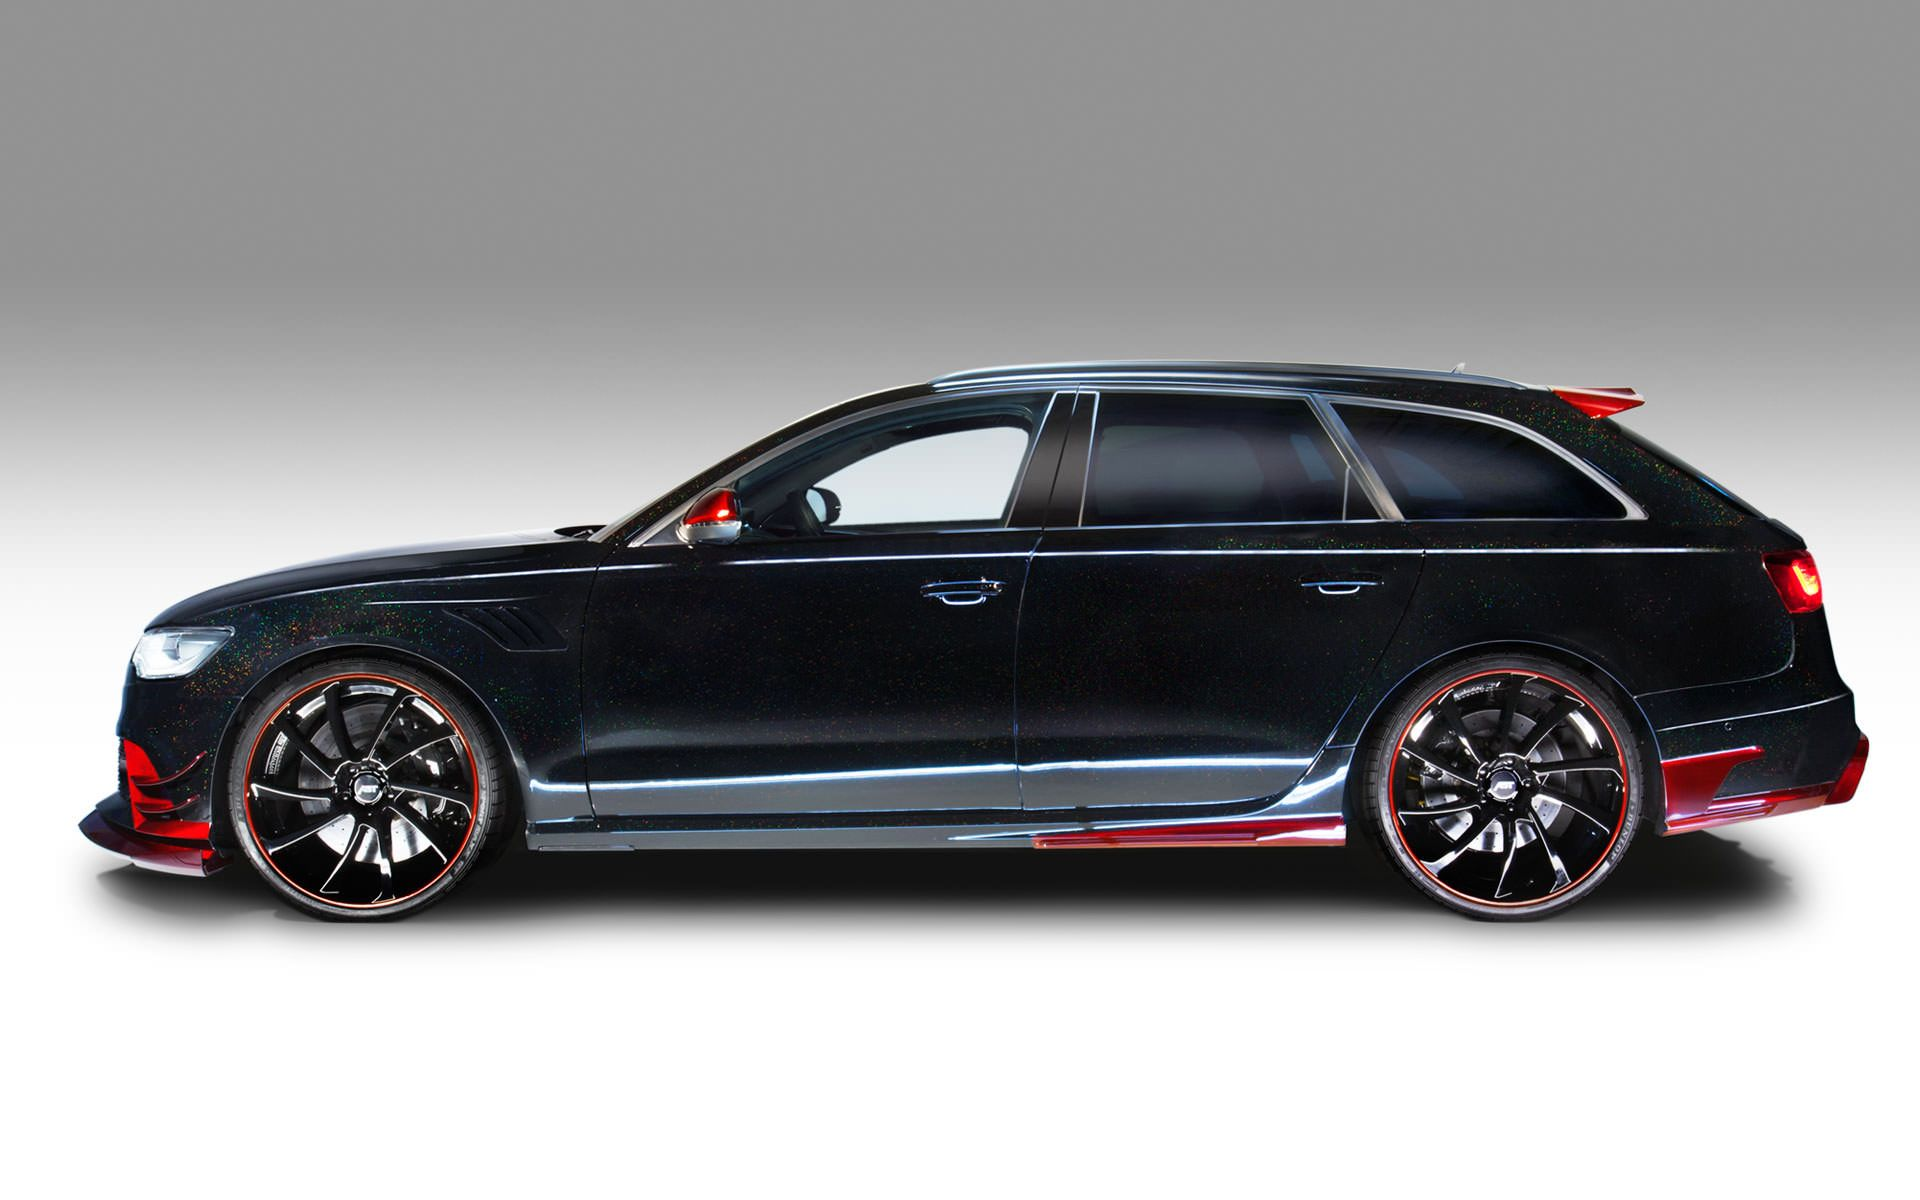 abt audi rs6 r limited edition audi pinterest audi audi rs6 and cars. Black Bedroom Furniture Sets. Home Design Ideas